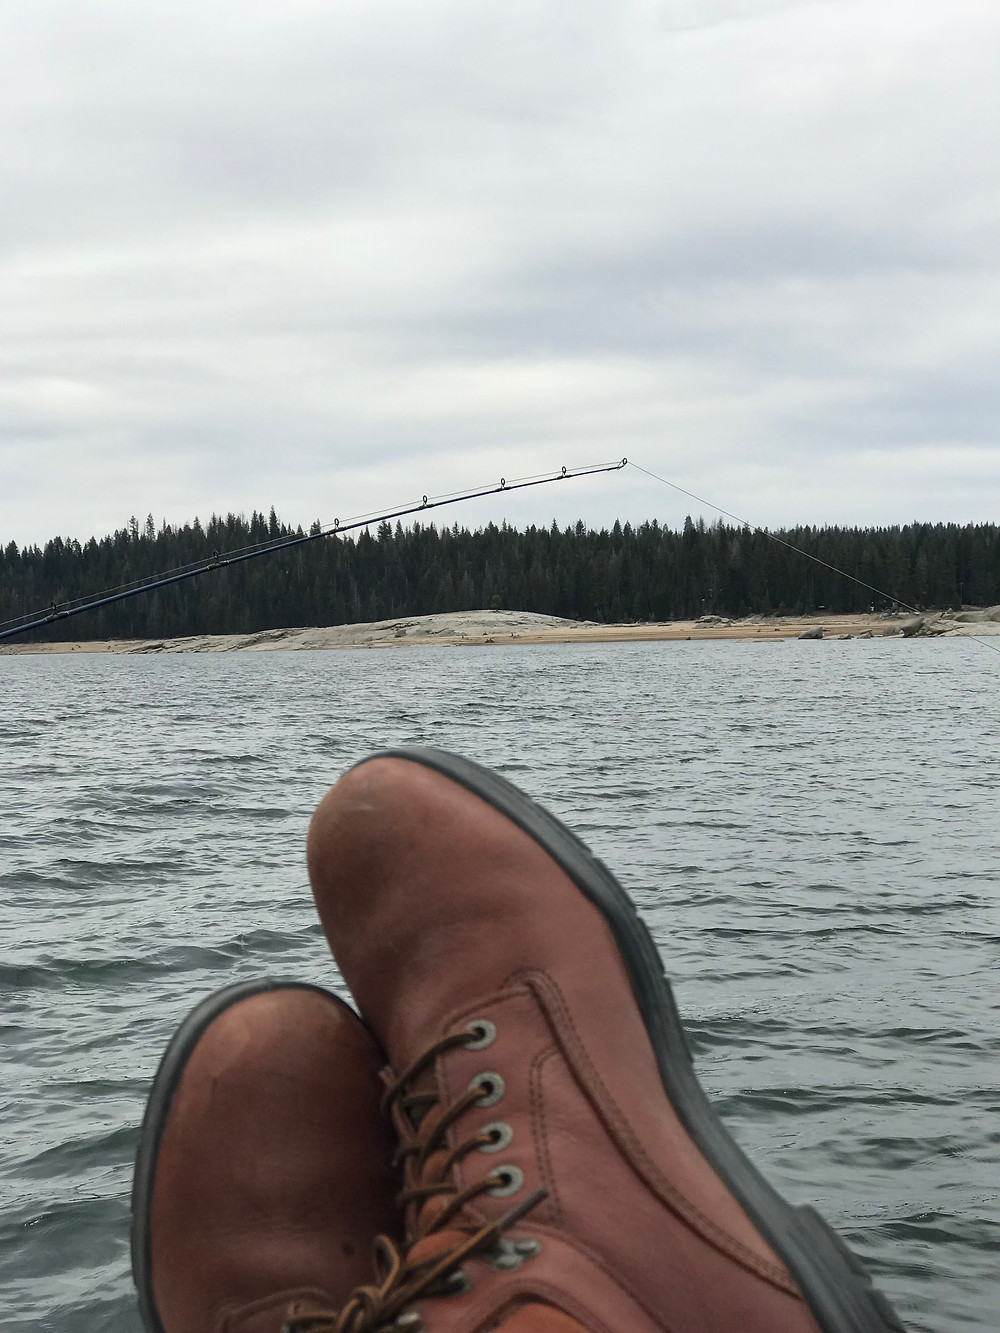 """Image of owner Sean Glover's shoes as he fishes during the brief """"off season"""" for tree nut pest prevention."""